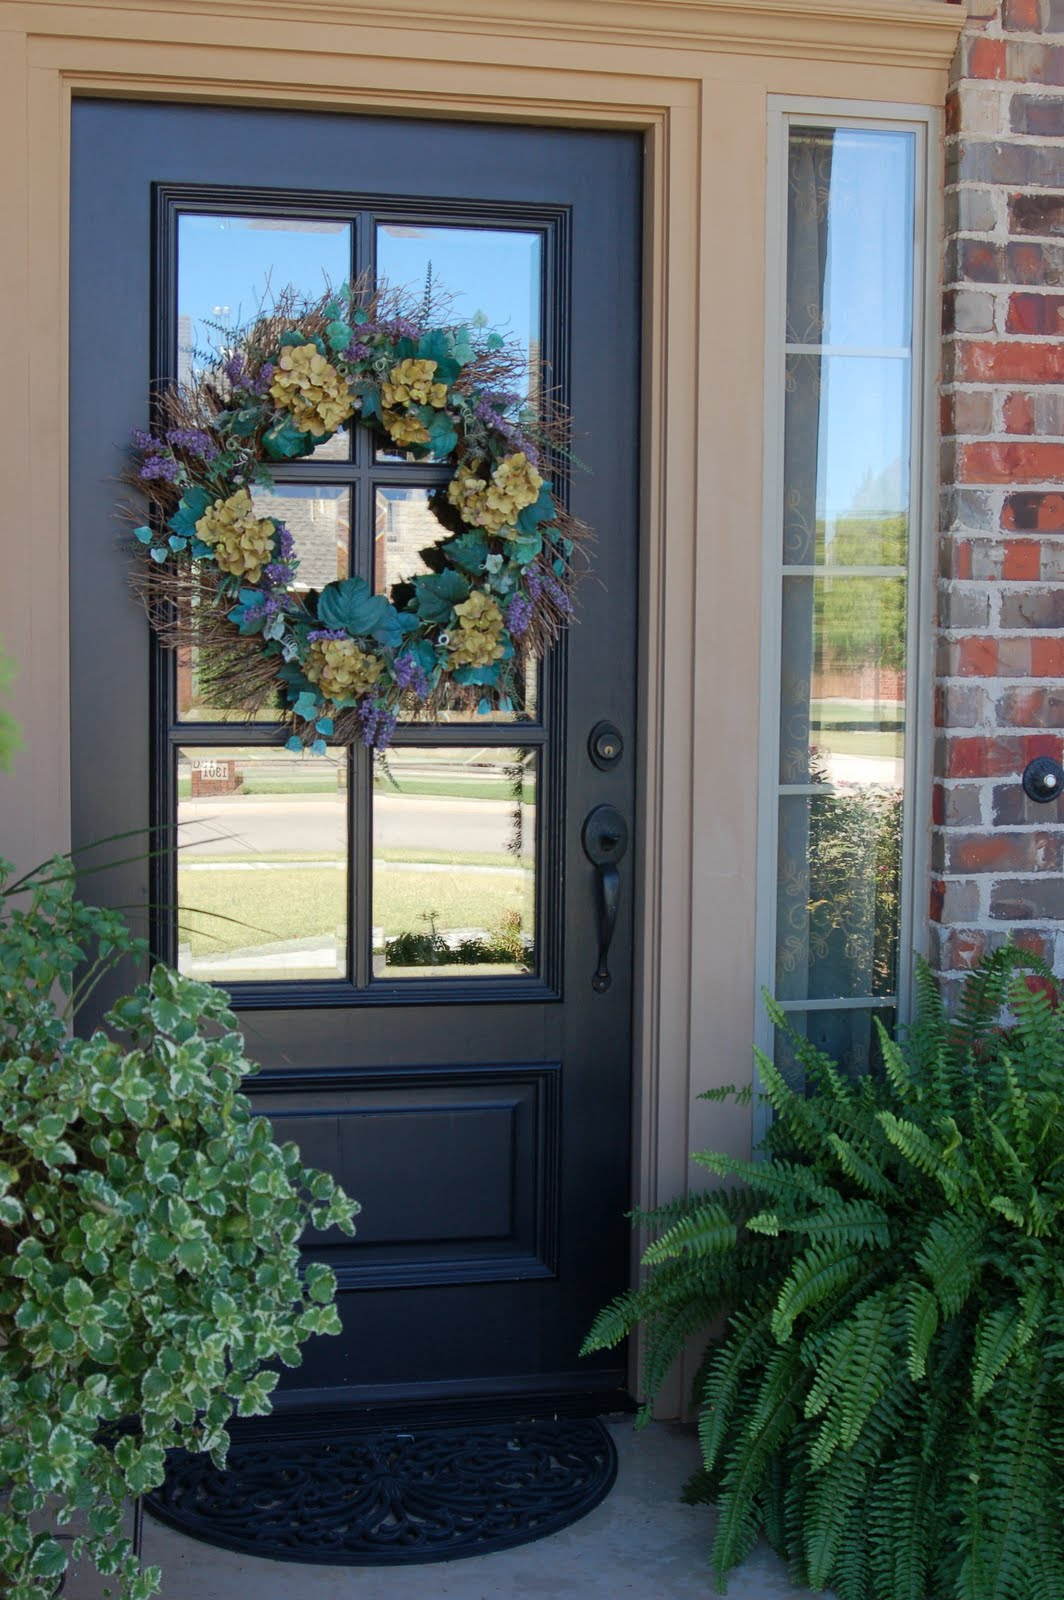 Grey dog designs front door facelift - What color door goes with gray house ...